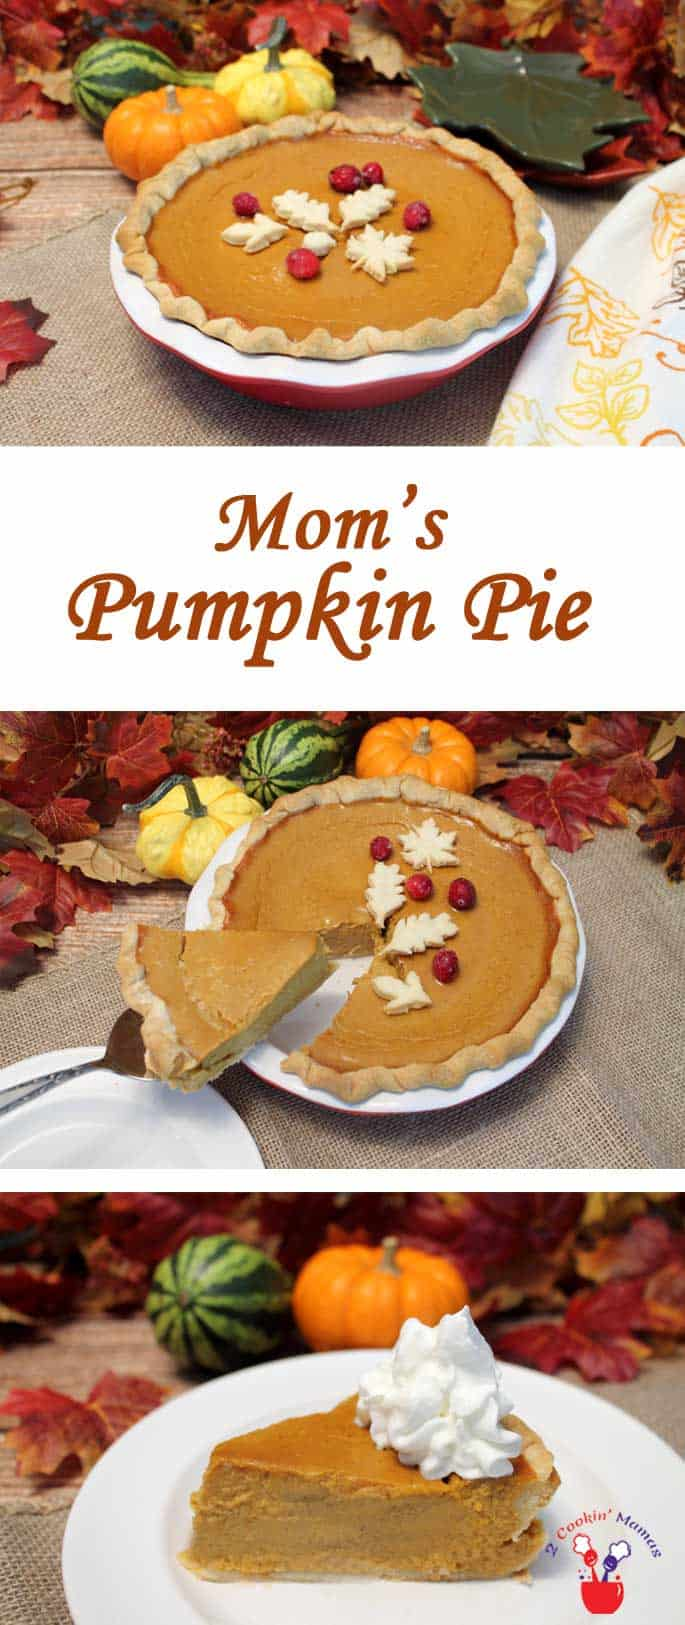 Moms Pumpkin Pie | 2 Cookin Mamas Creamy, rich pumpkin pie that's easy to make & comes out perfect every time. #recipe